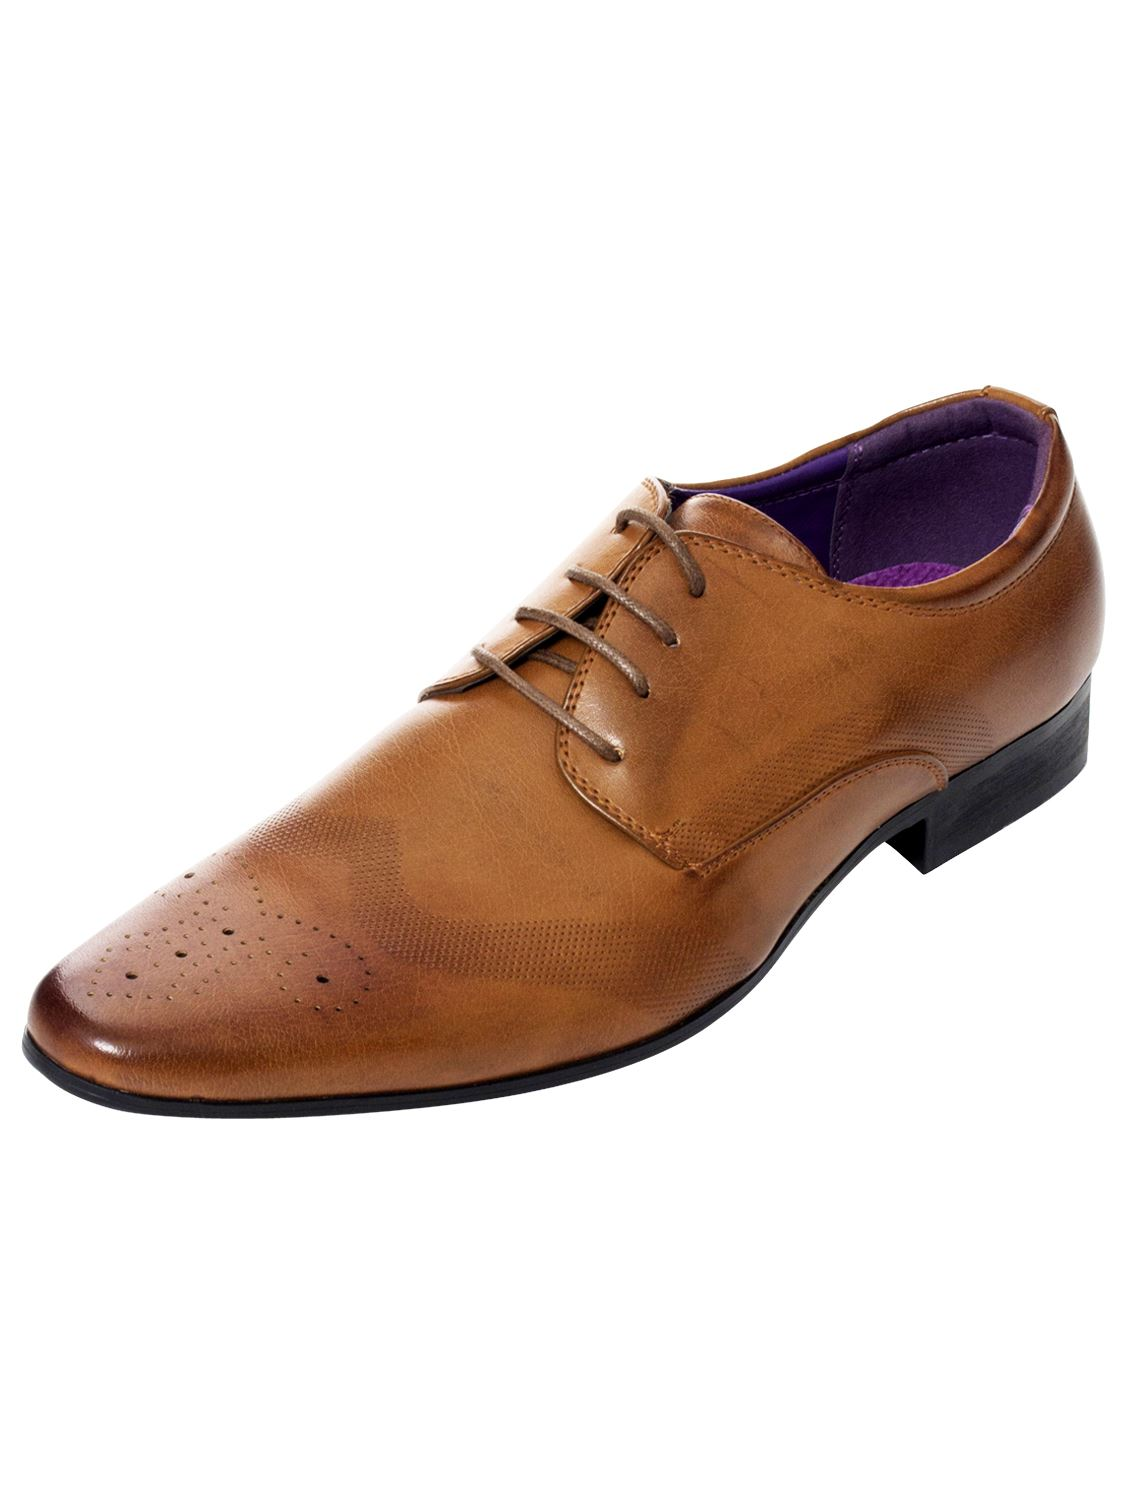 Mens-Faux-Leather-Shoes-Smart-Formal-Wedding-Office-Lace-Up-Designer-Brogues thumbnail 8